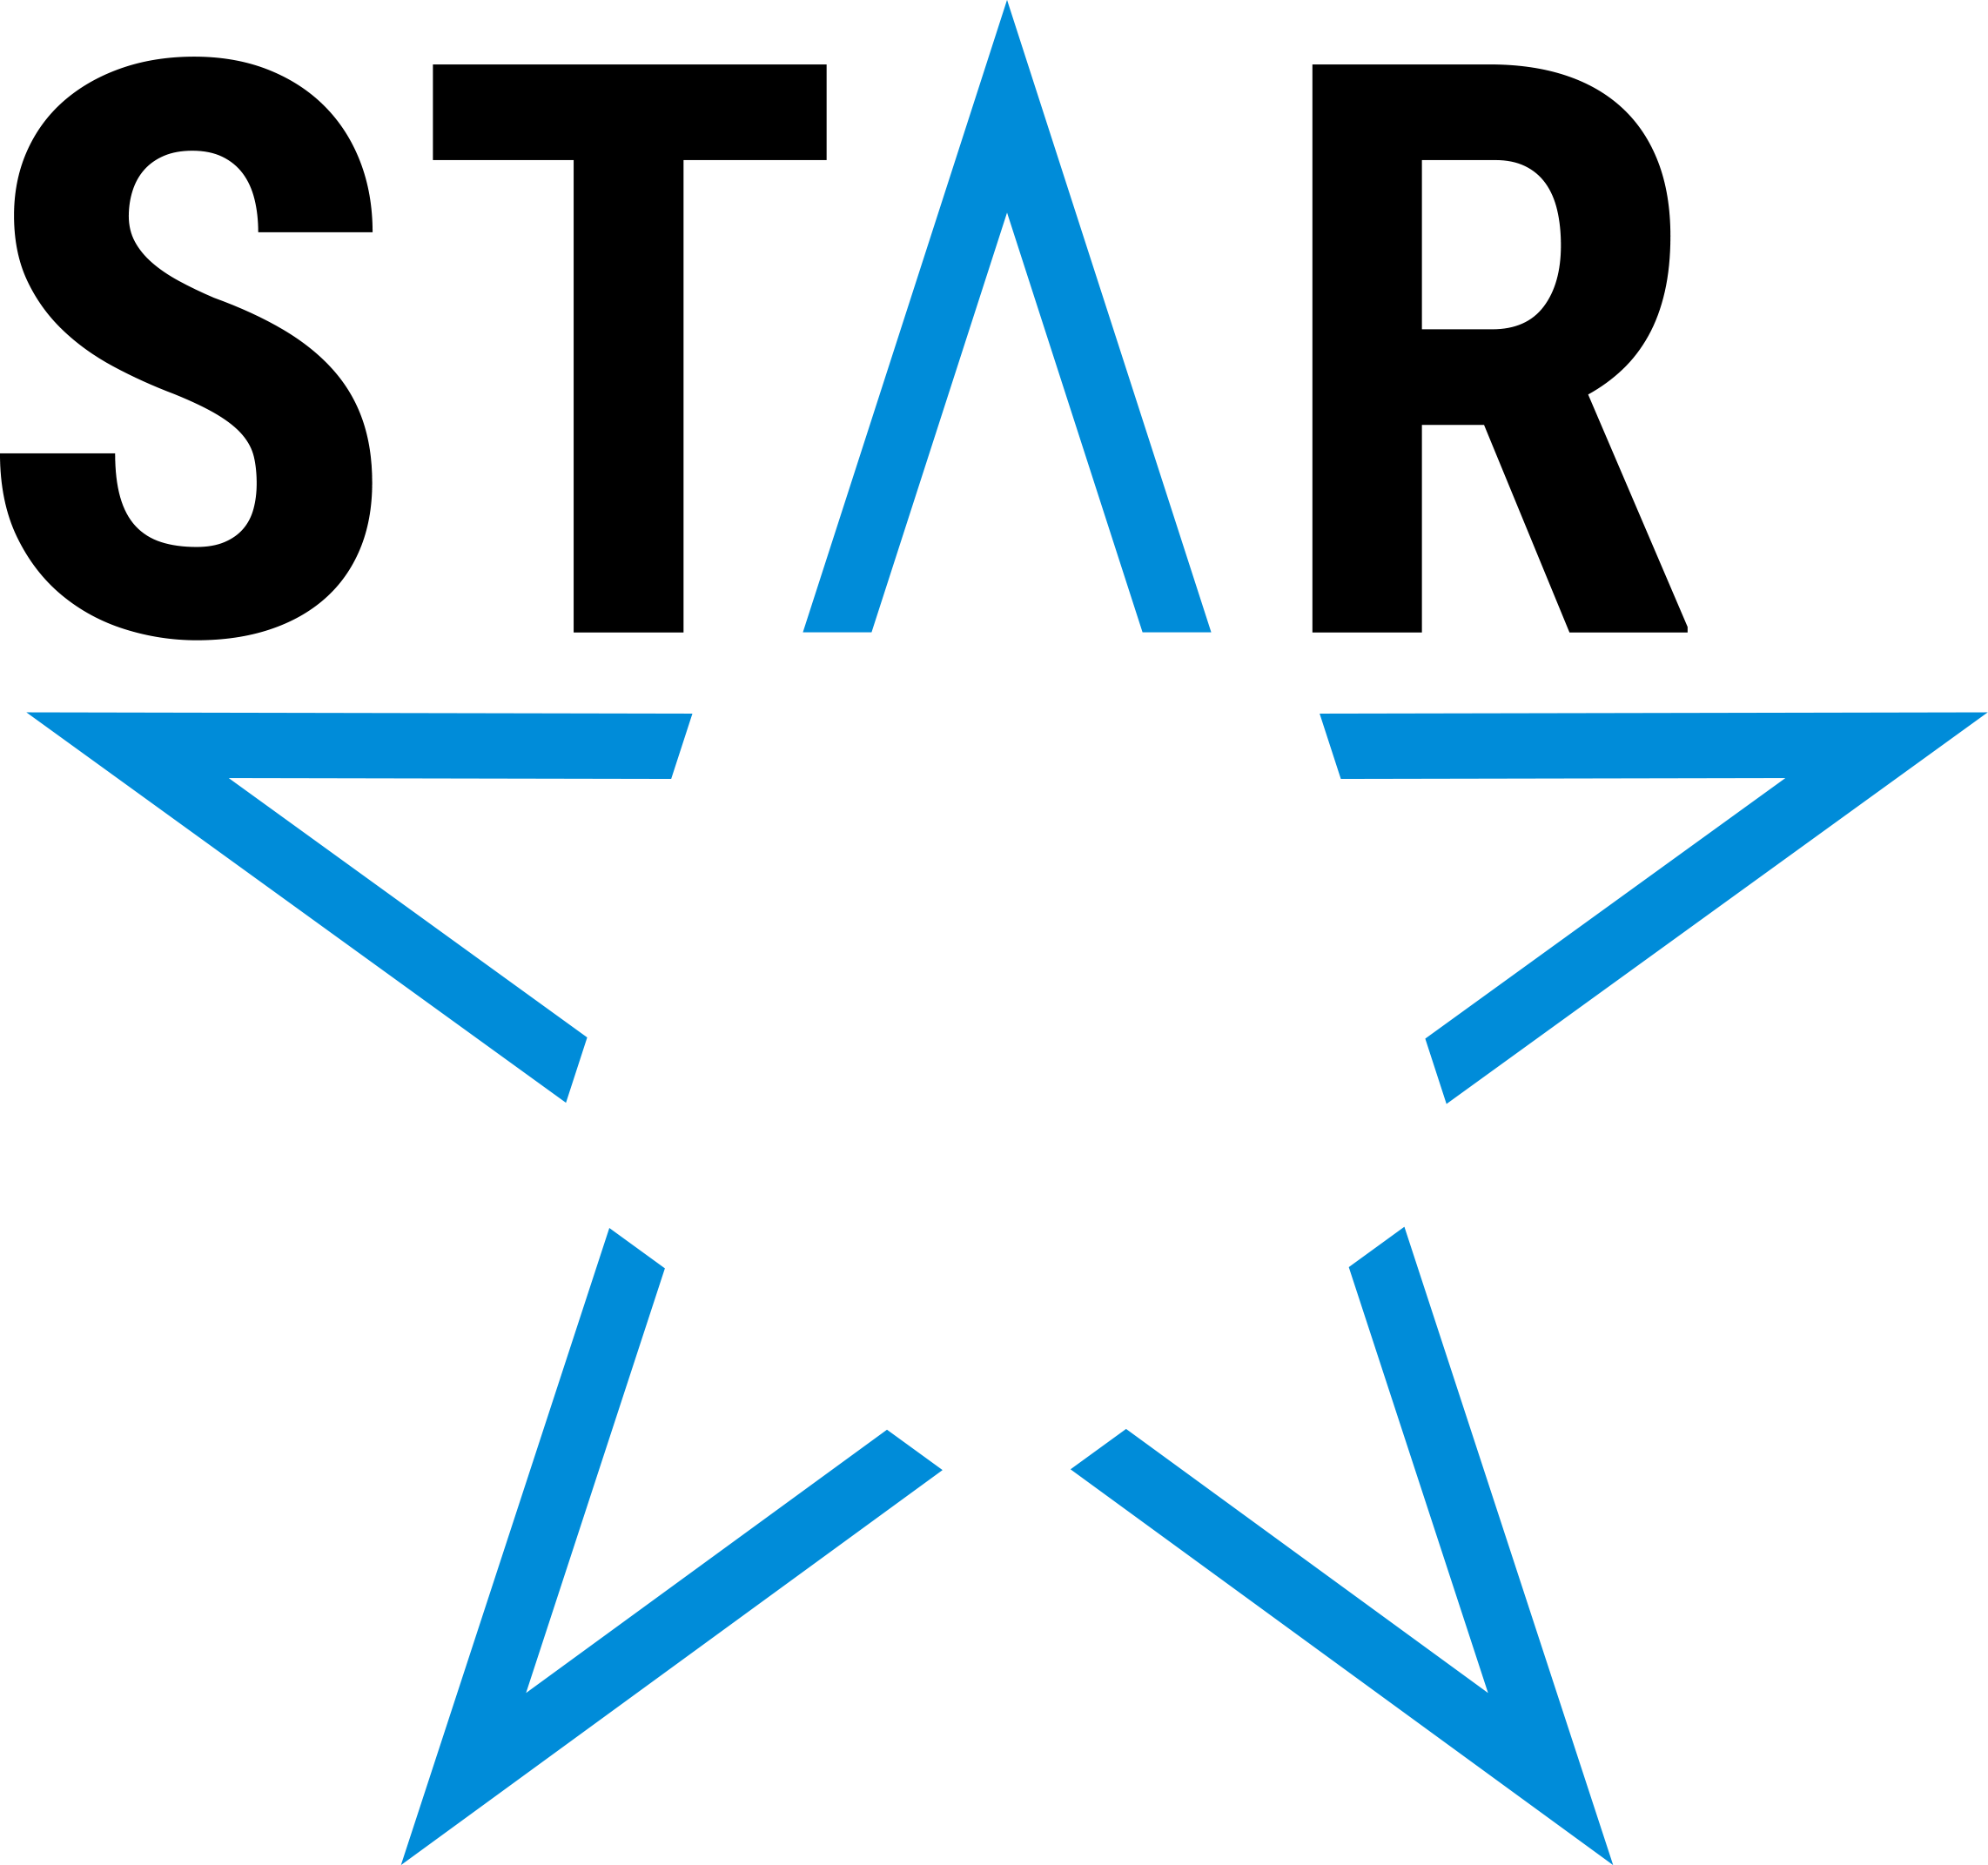 STAR CRN LogoOnly_clr,trns,2284